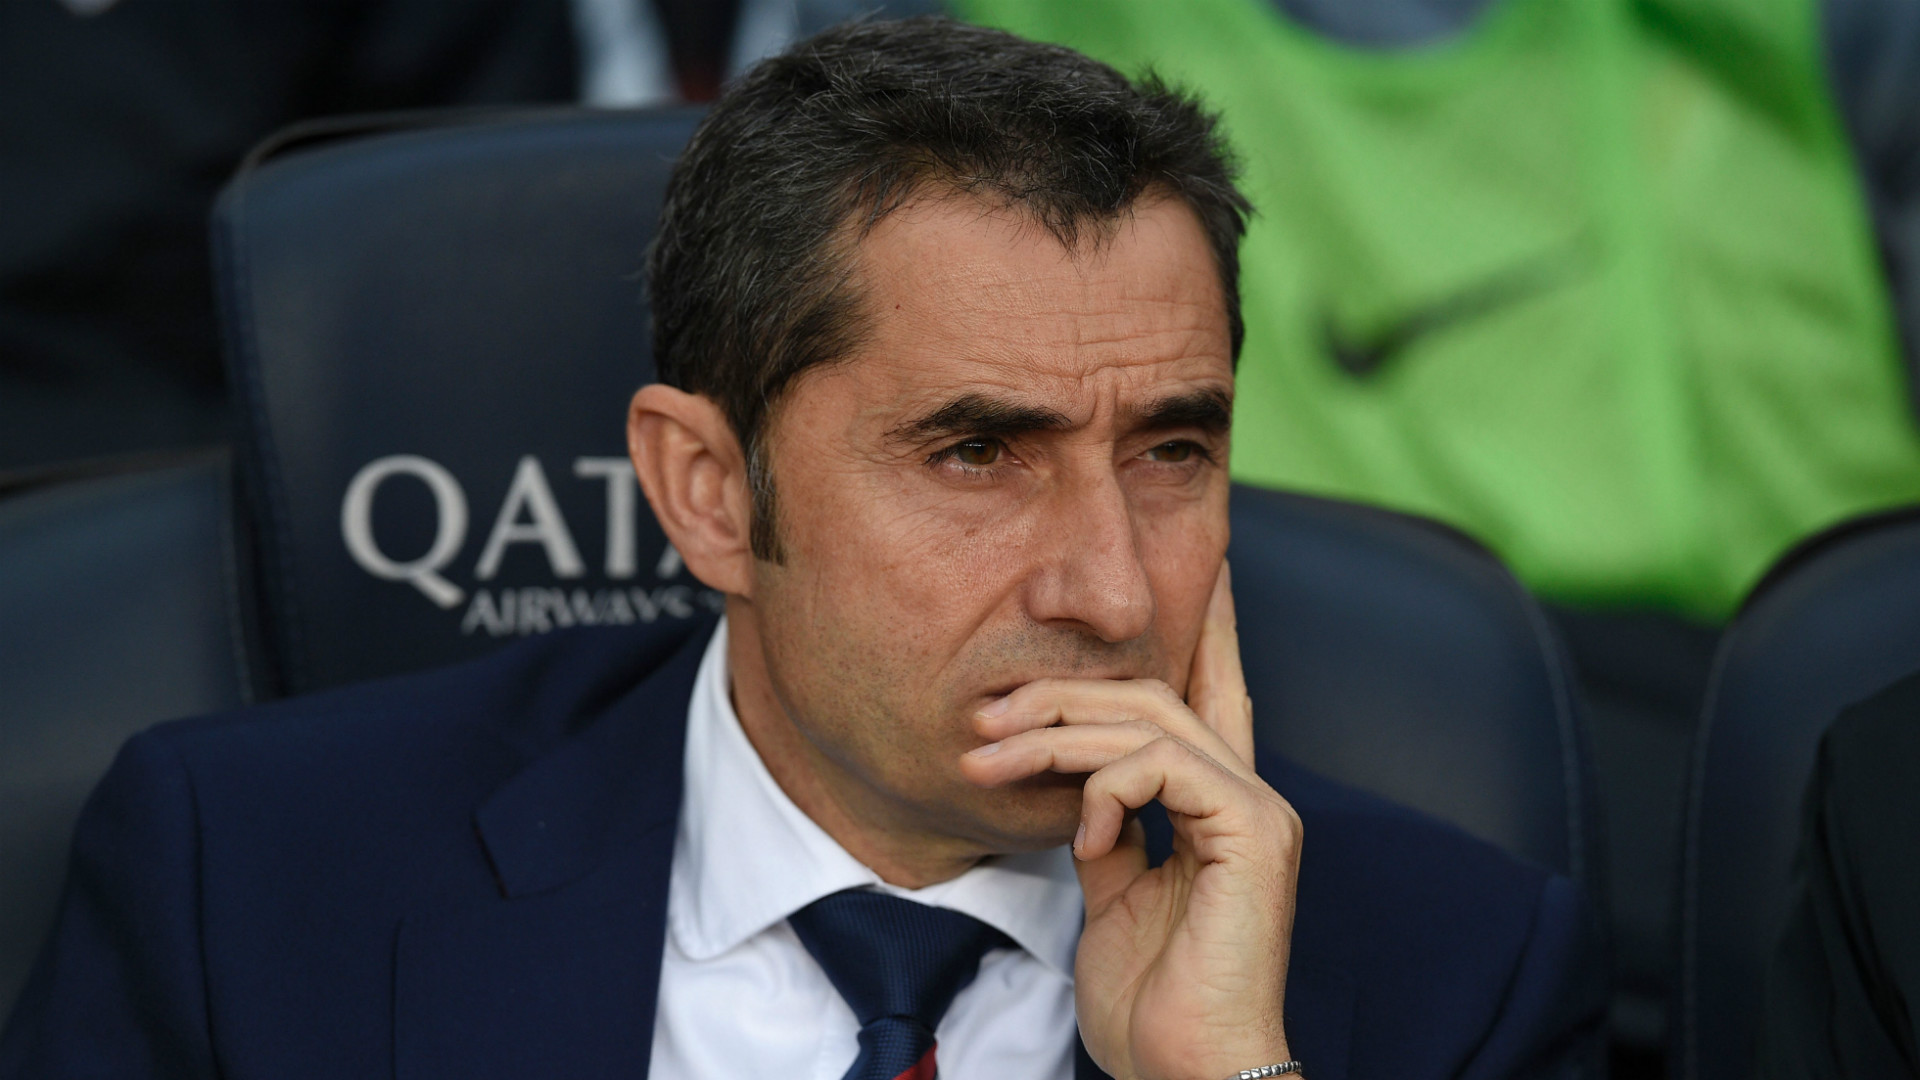 Ernesto Valverde Athletic Club La Liga